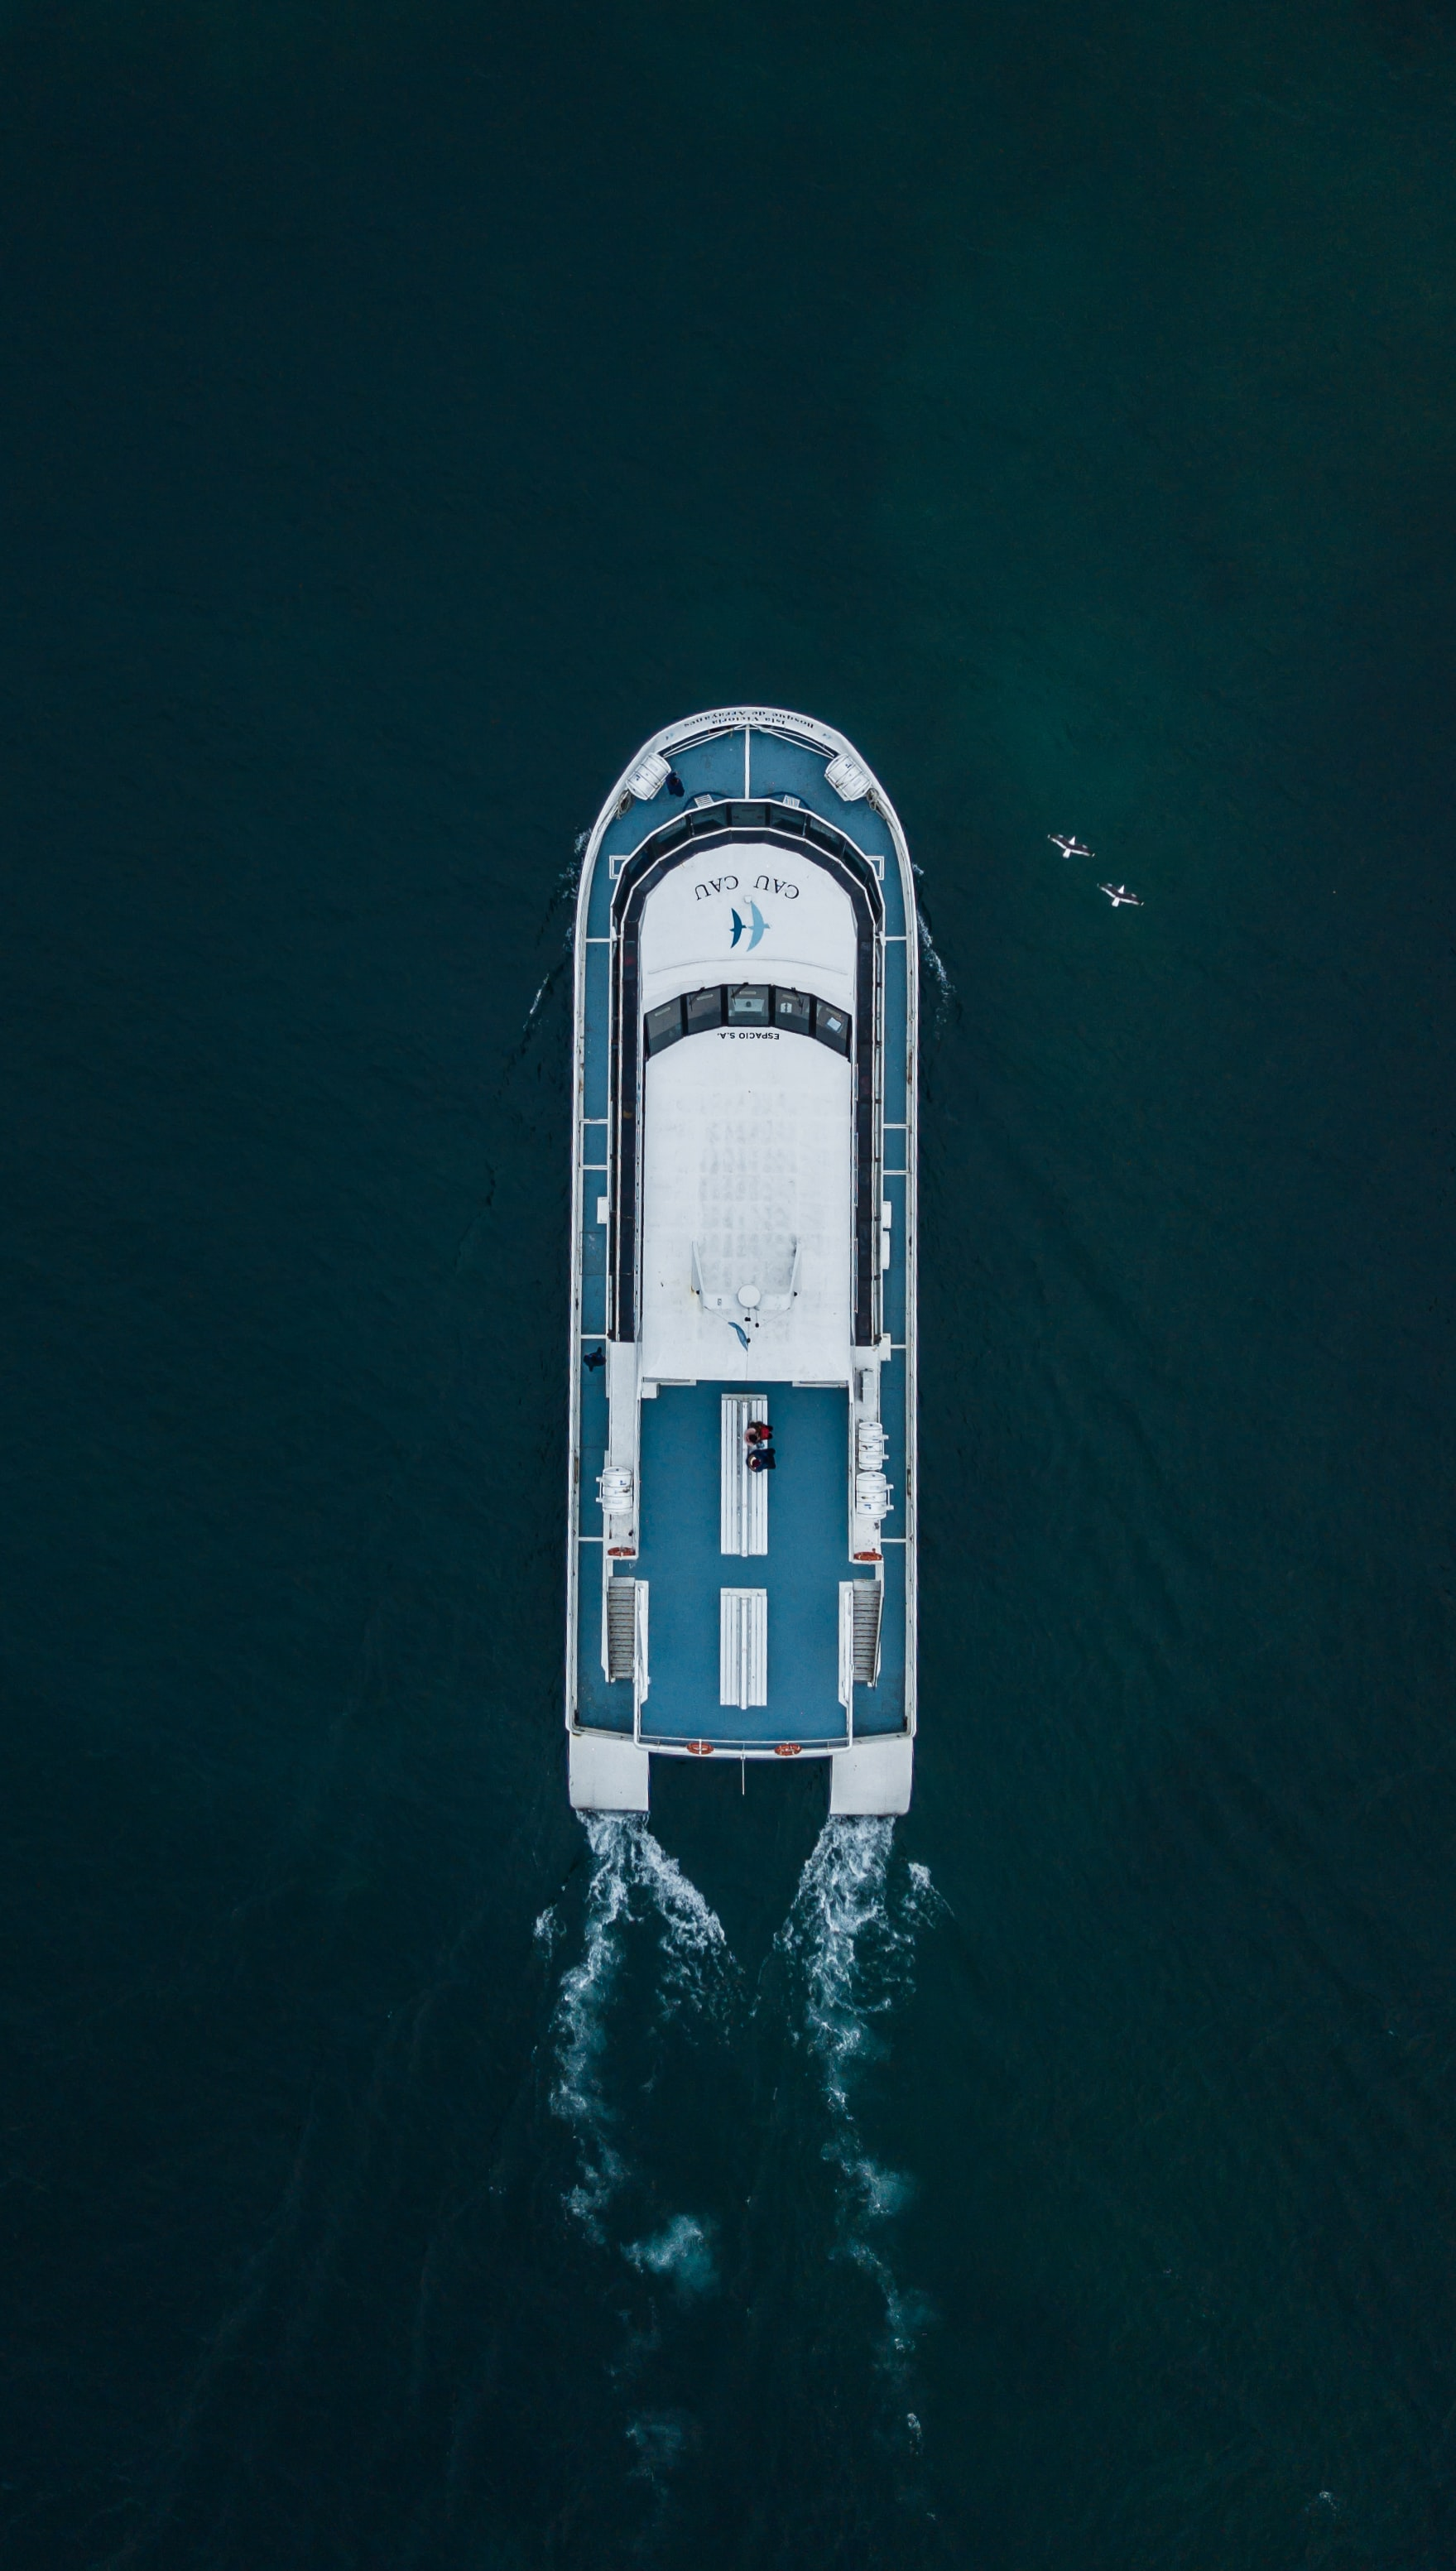 aerial photo of yacht on body of water during daytime